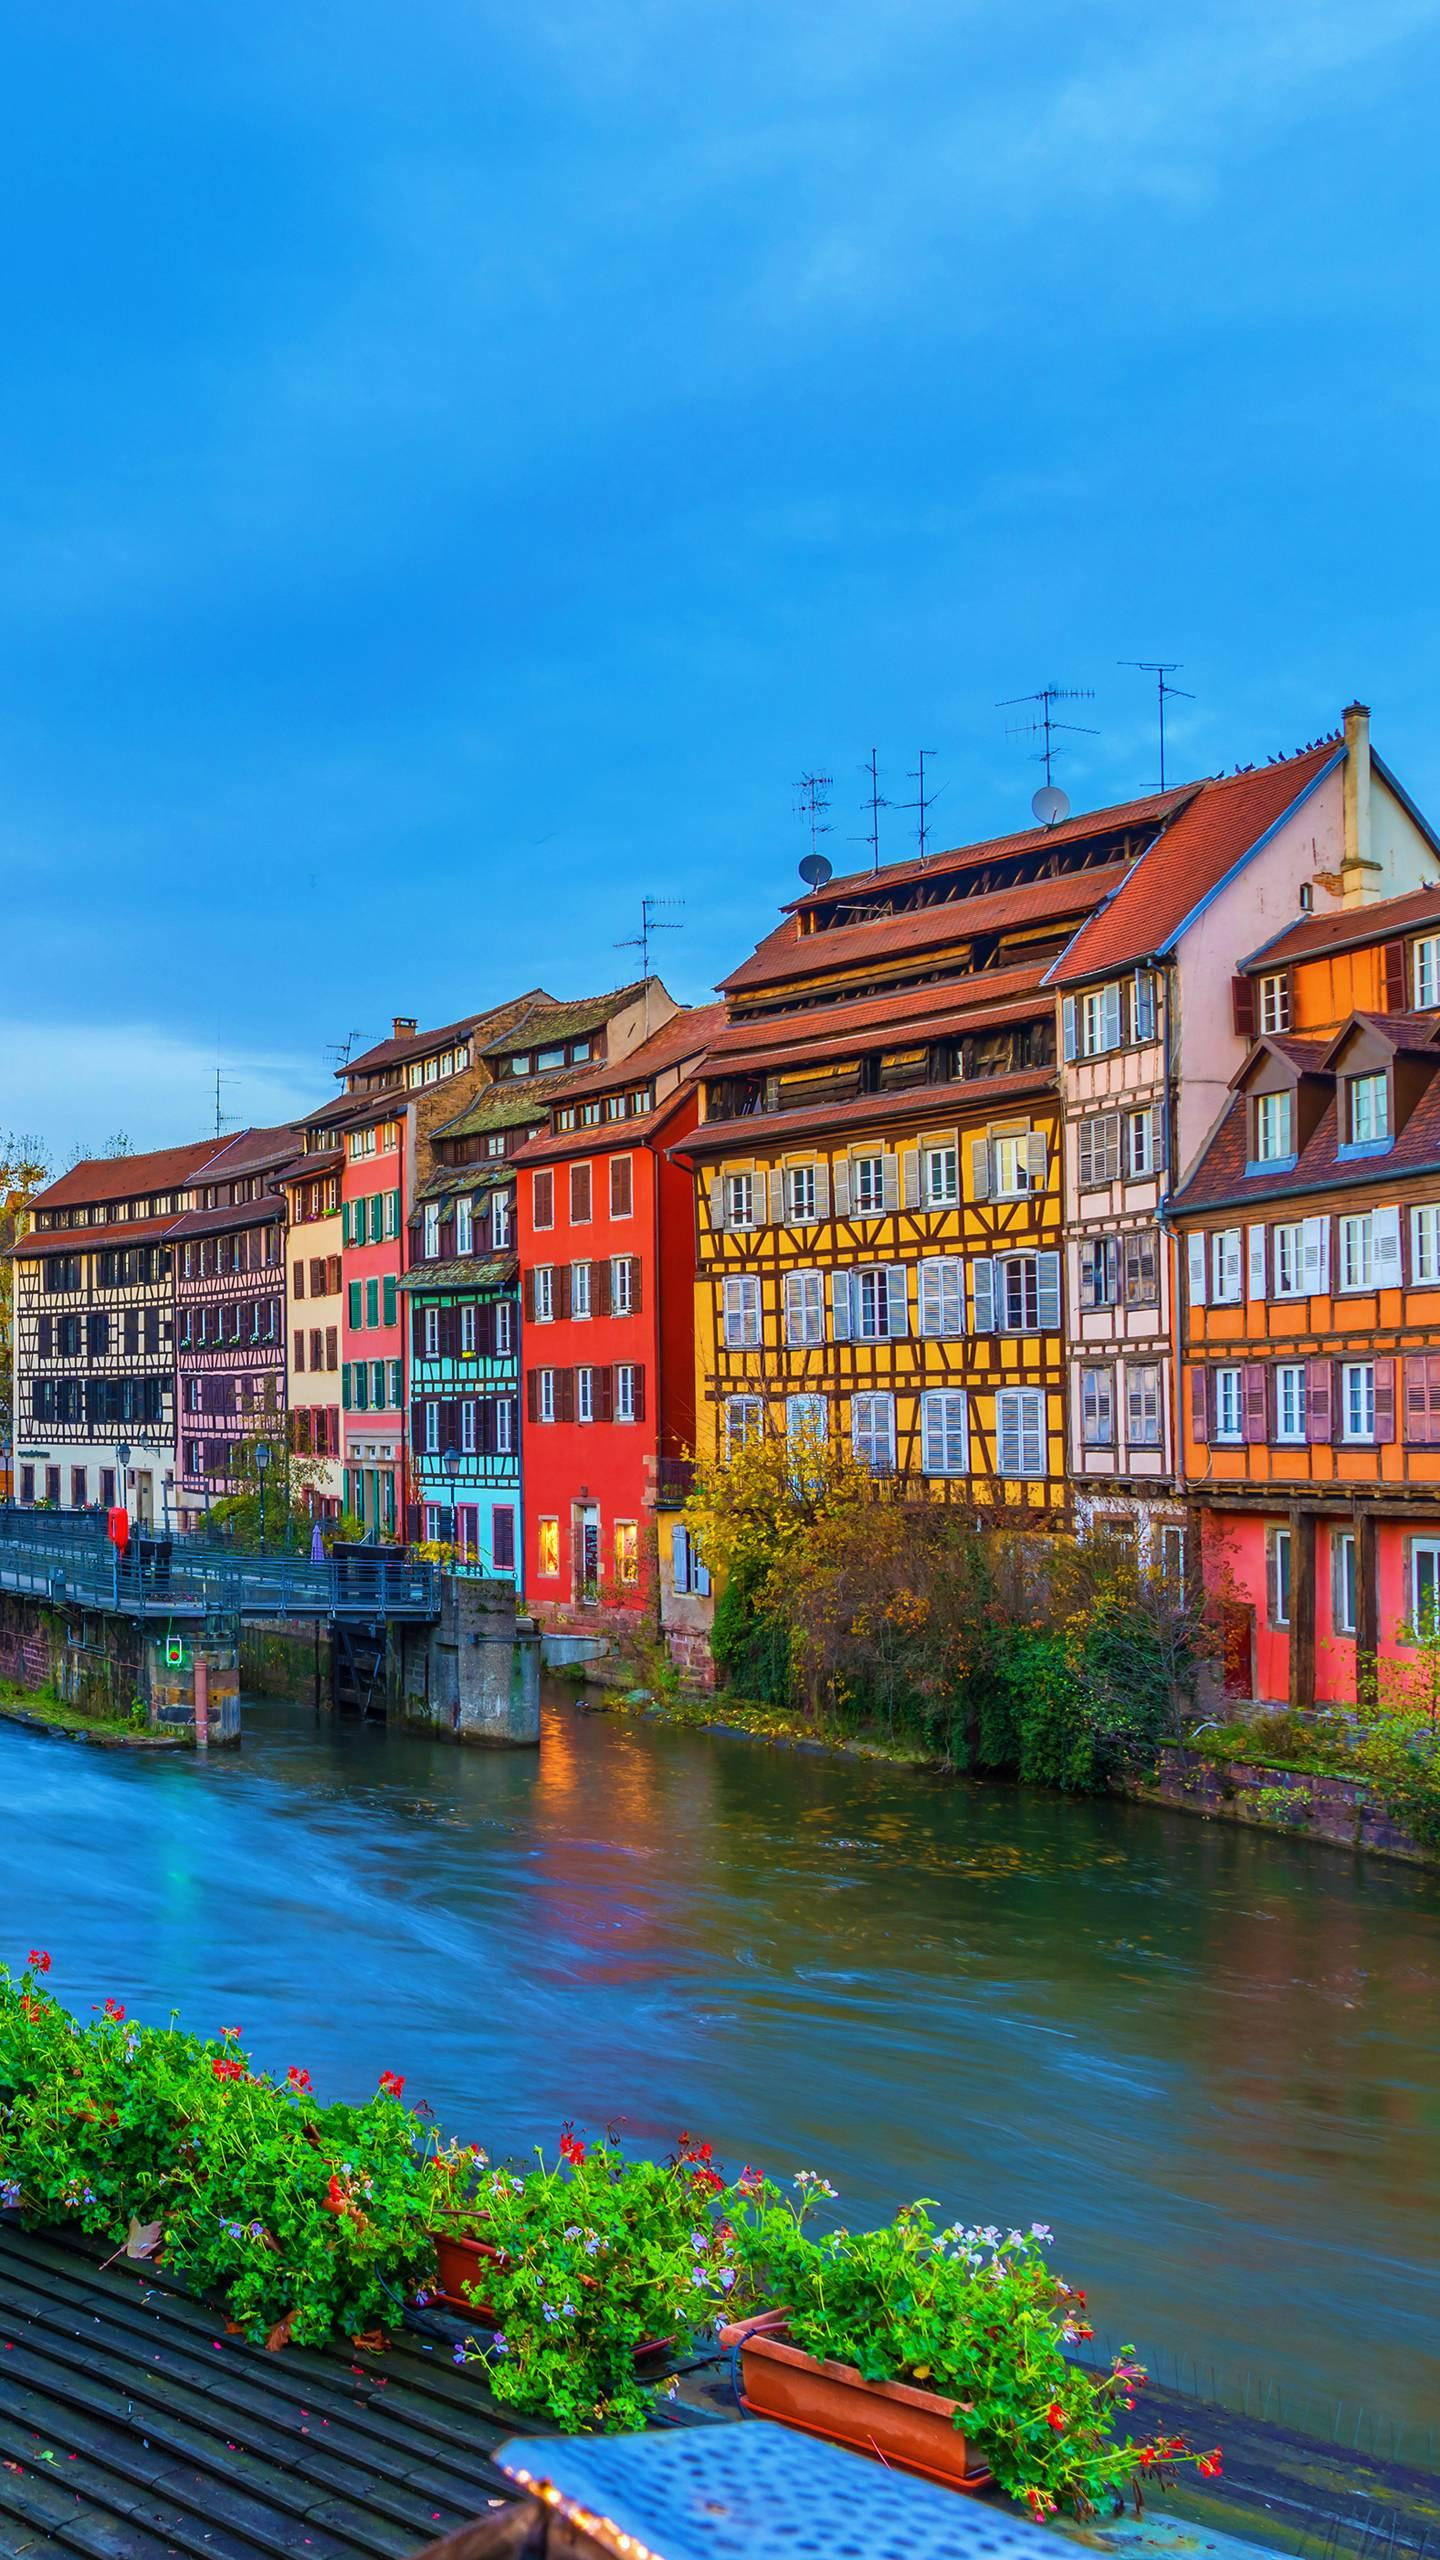 France - Strasbourg. The large number of buildings that have been preserved since the Middle Ages have made the city gorgeous and long.